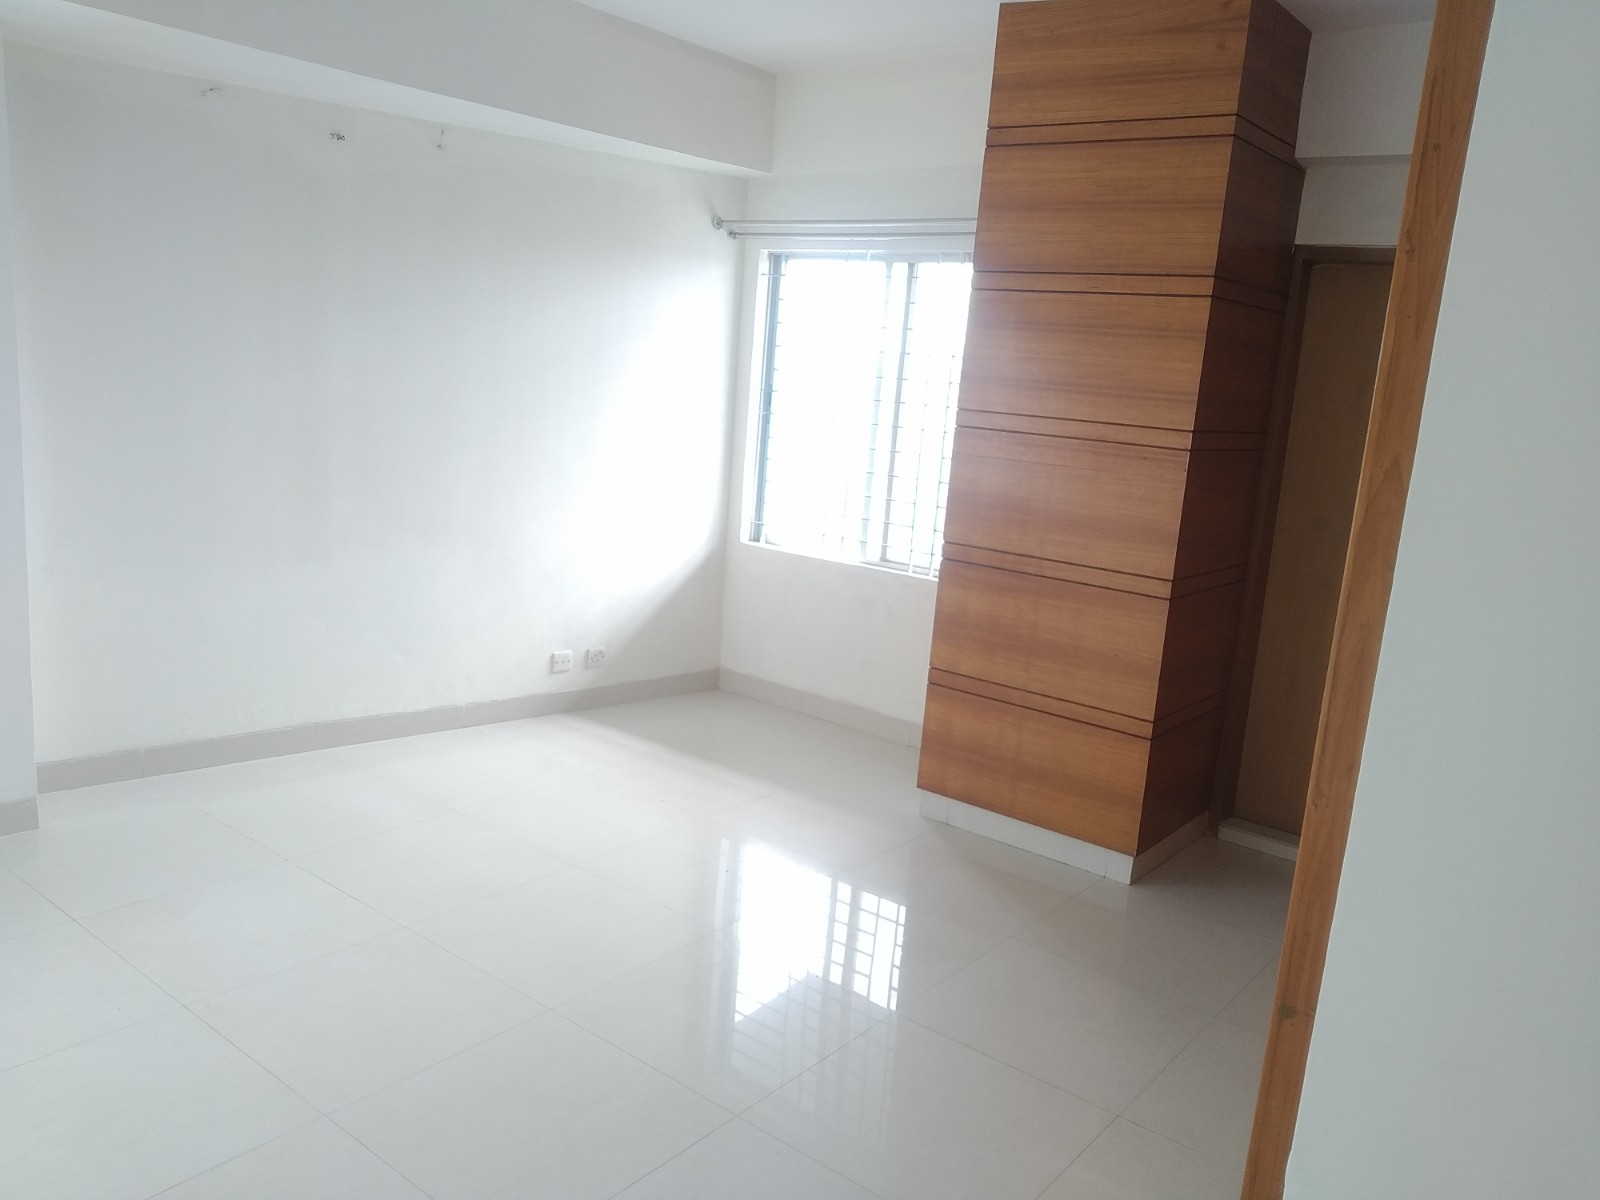 2810-sft-apartment-for-sale-at-dhanmondi-14th-floor-136760